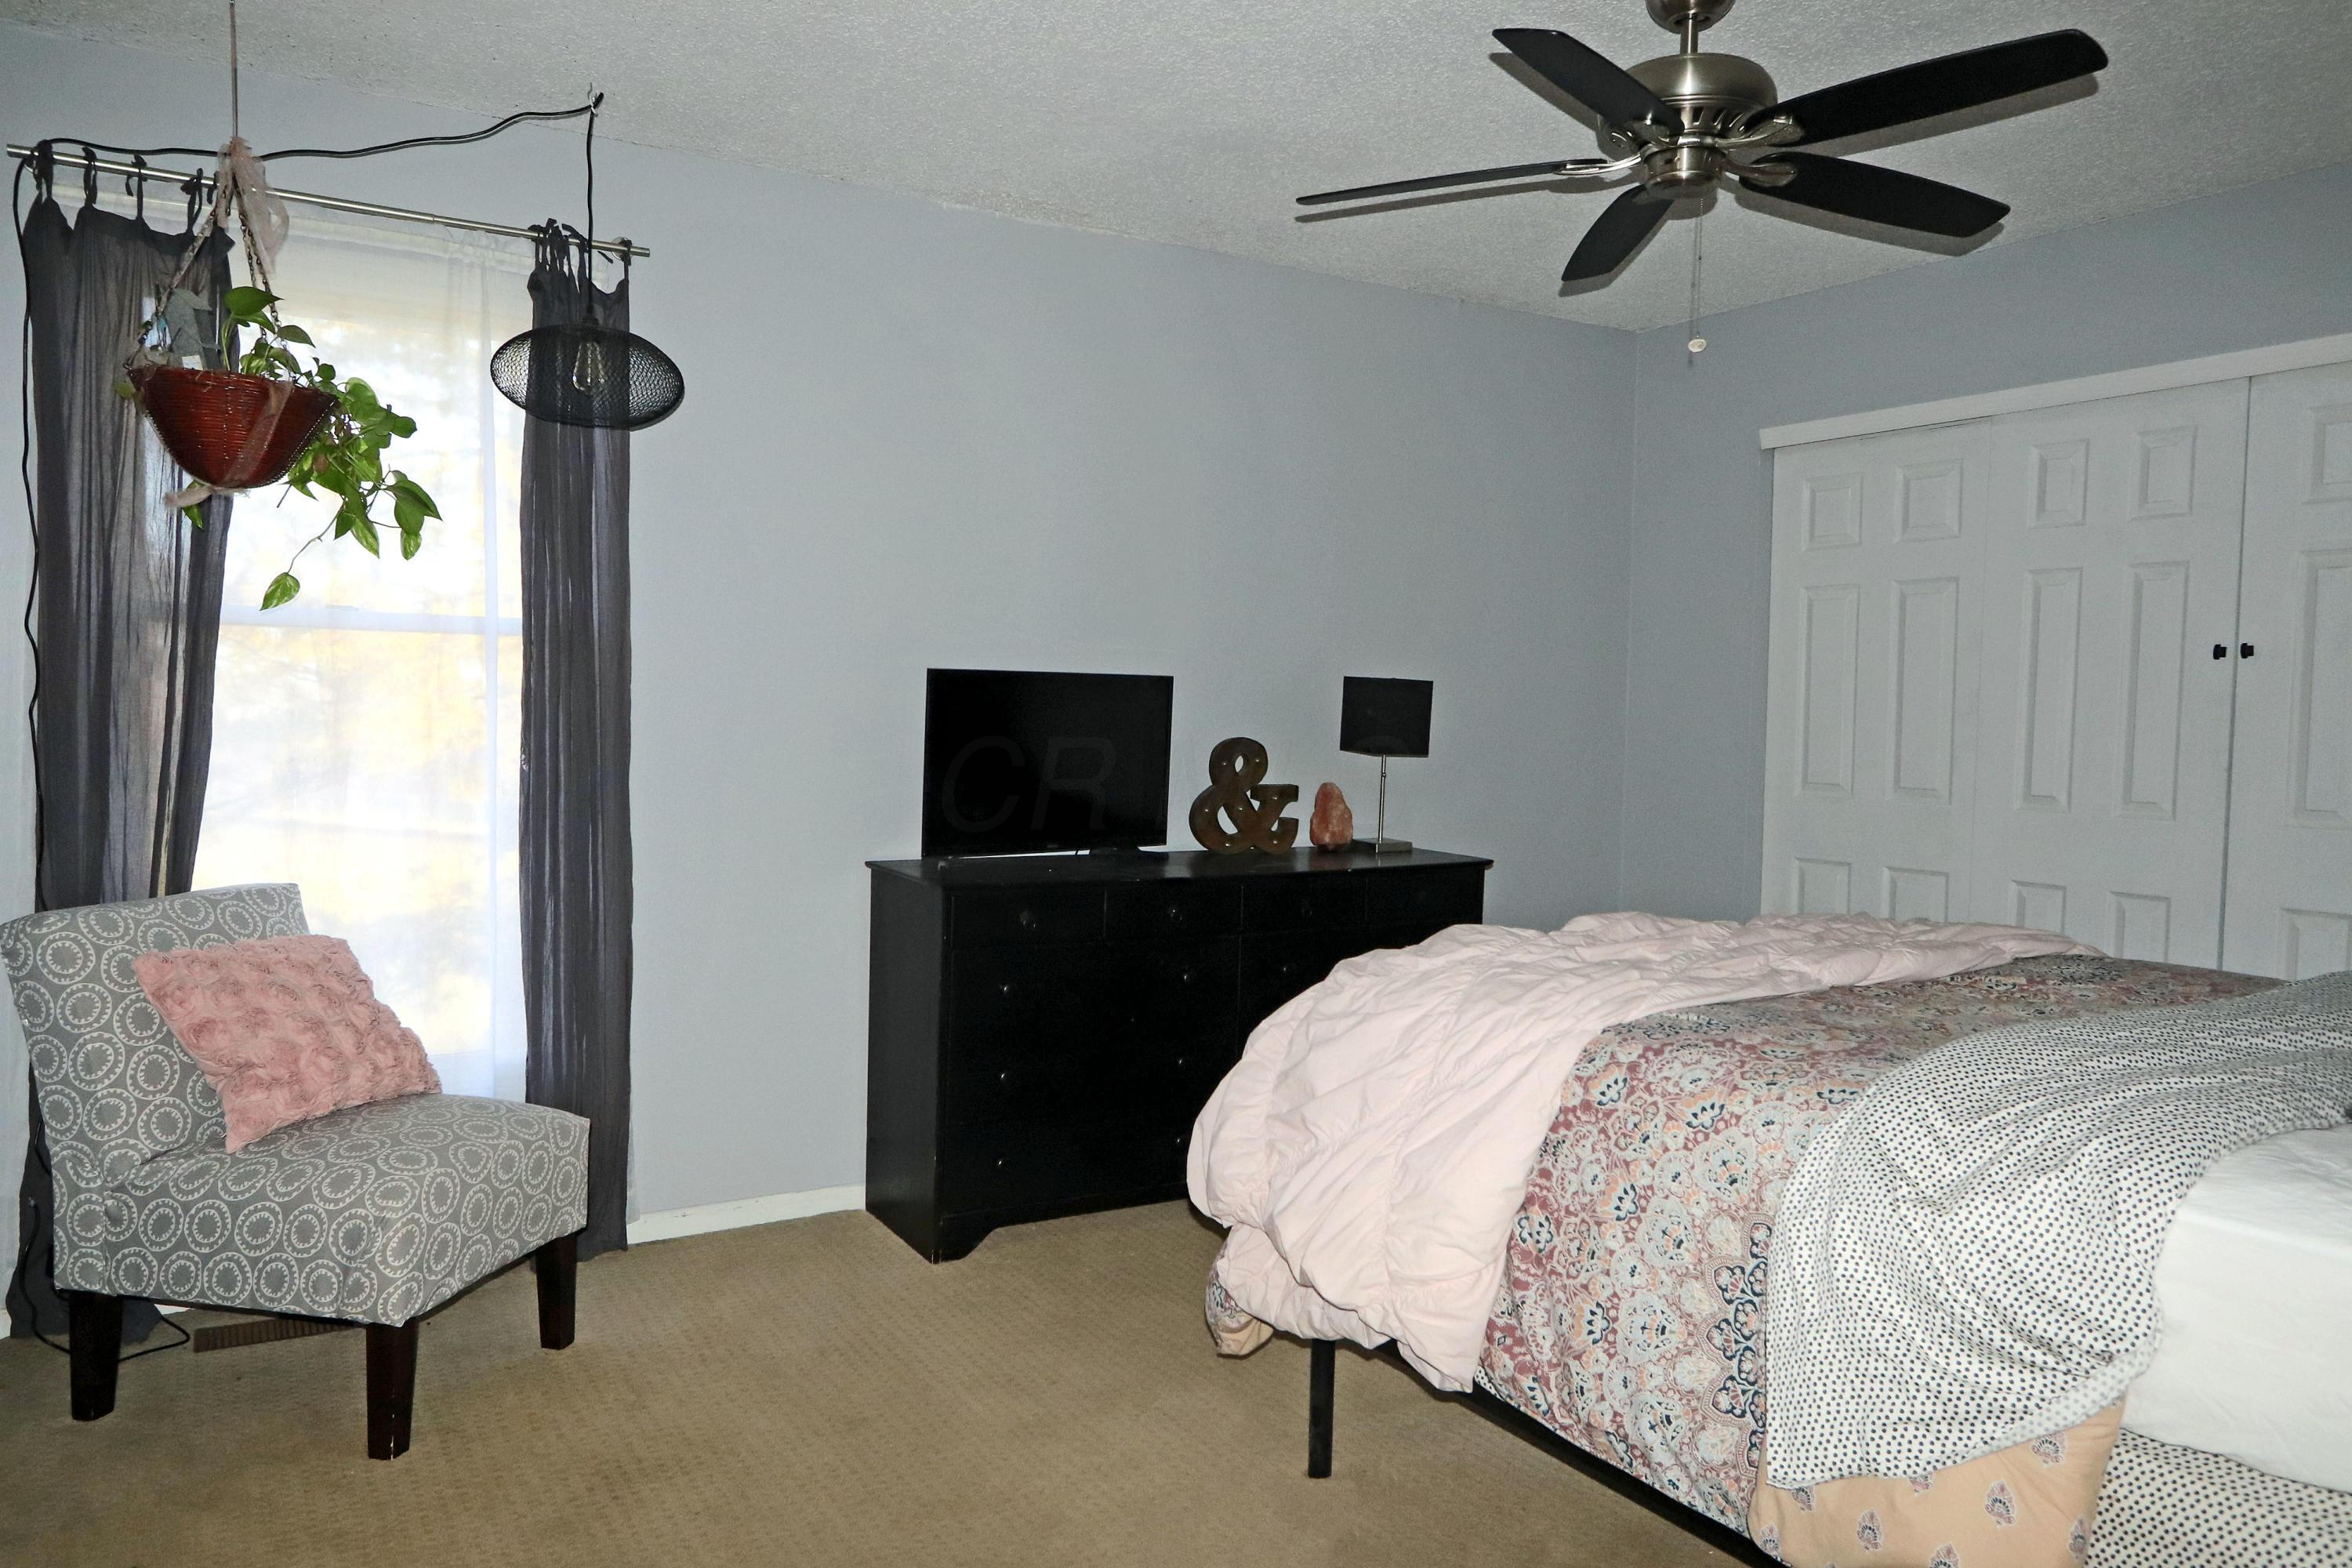 6691 Willow Grove Place, Dublin, Ohio 43017, 2 Bedrooms Bedrooms, ,2 BathroomsBathrooms,Residential,For Sale,Willow Grove,221001004